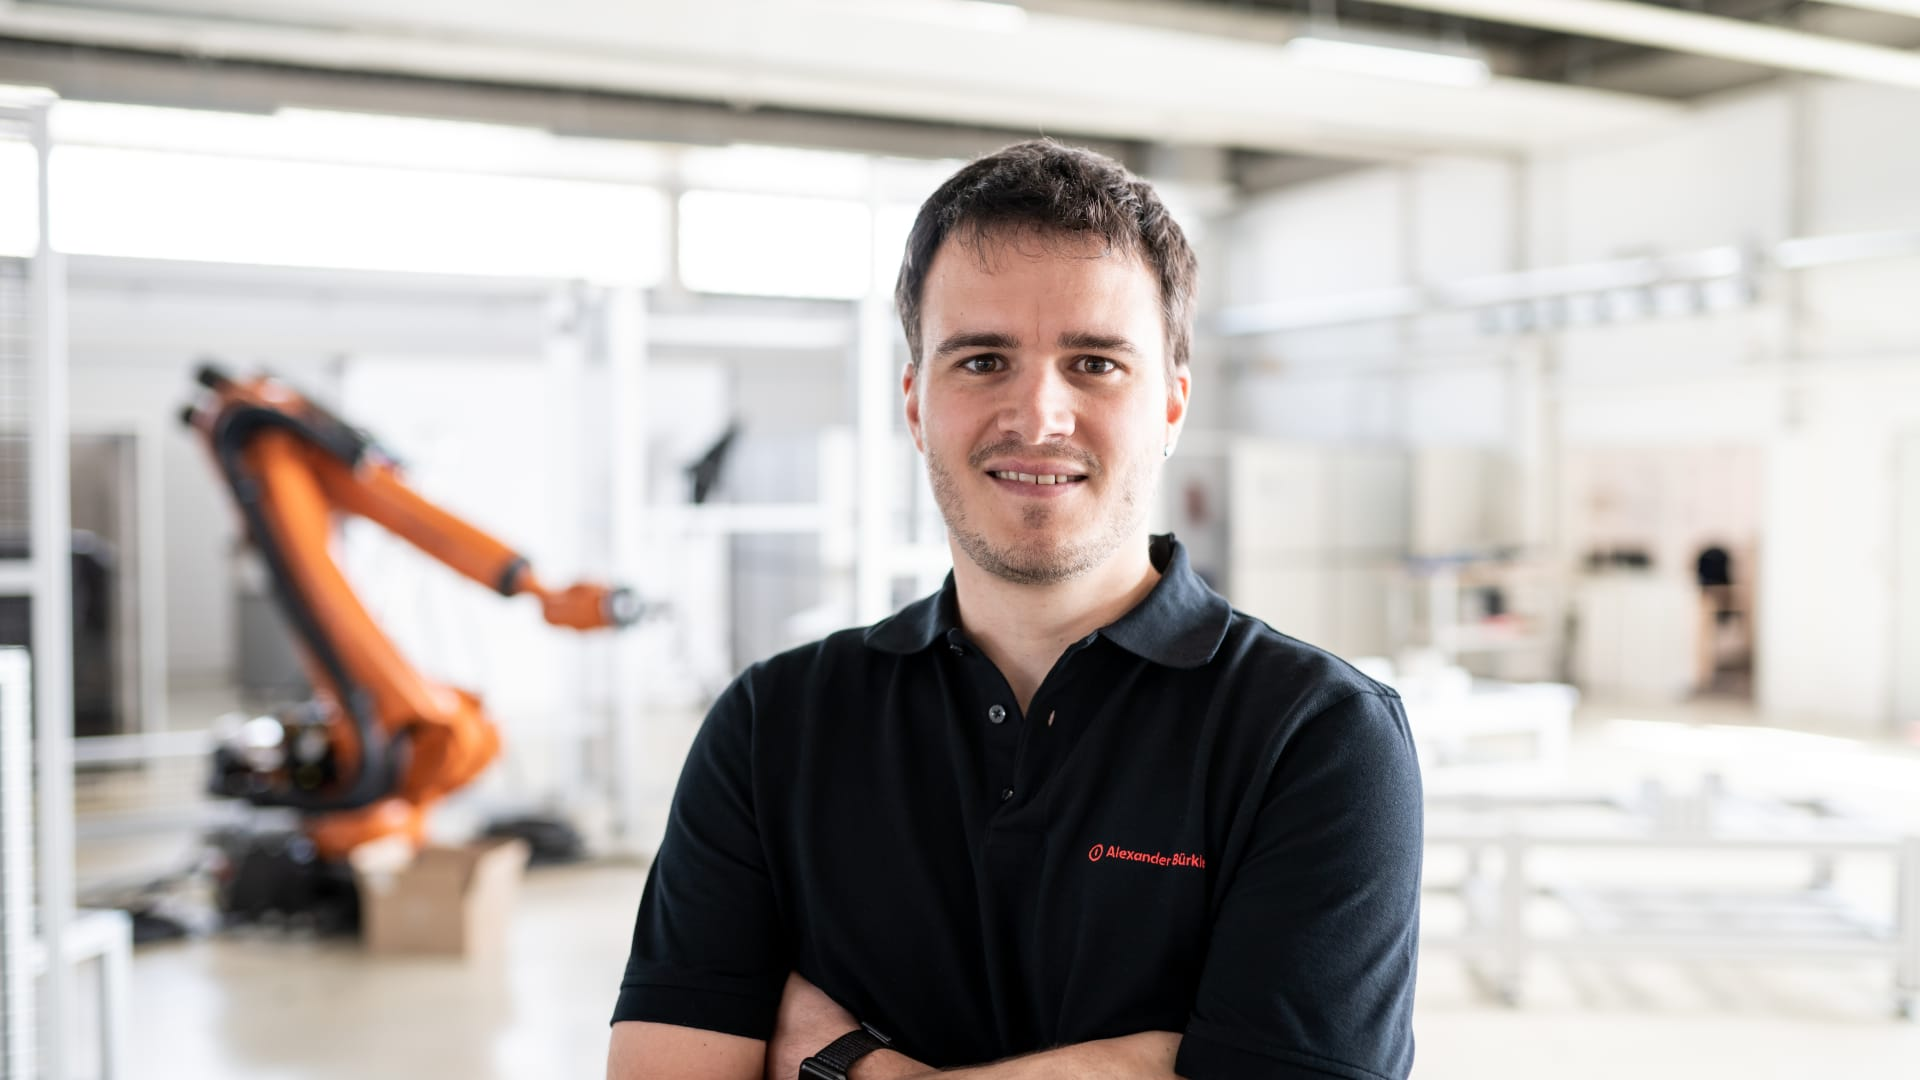 Alexander Bürkle robotic solutions